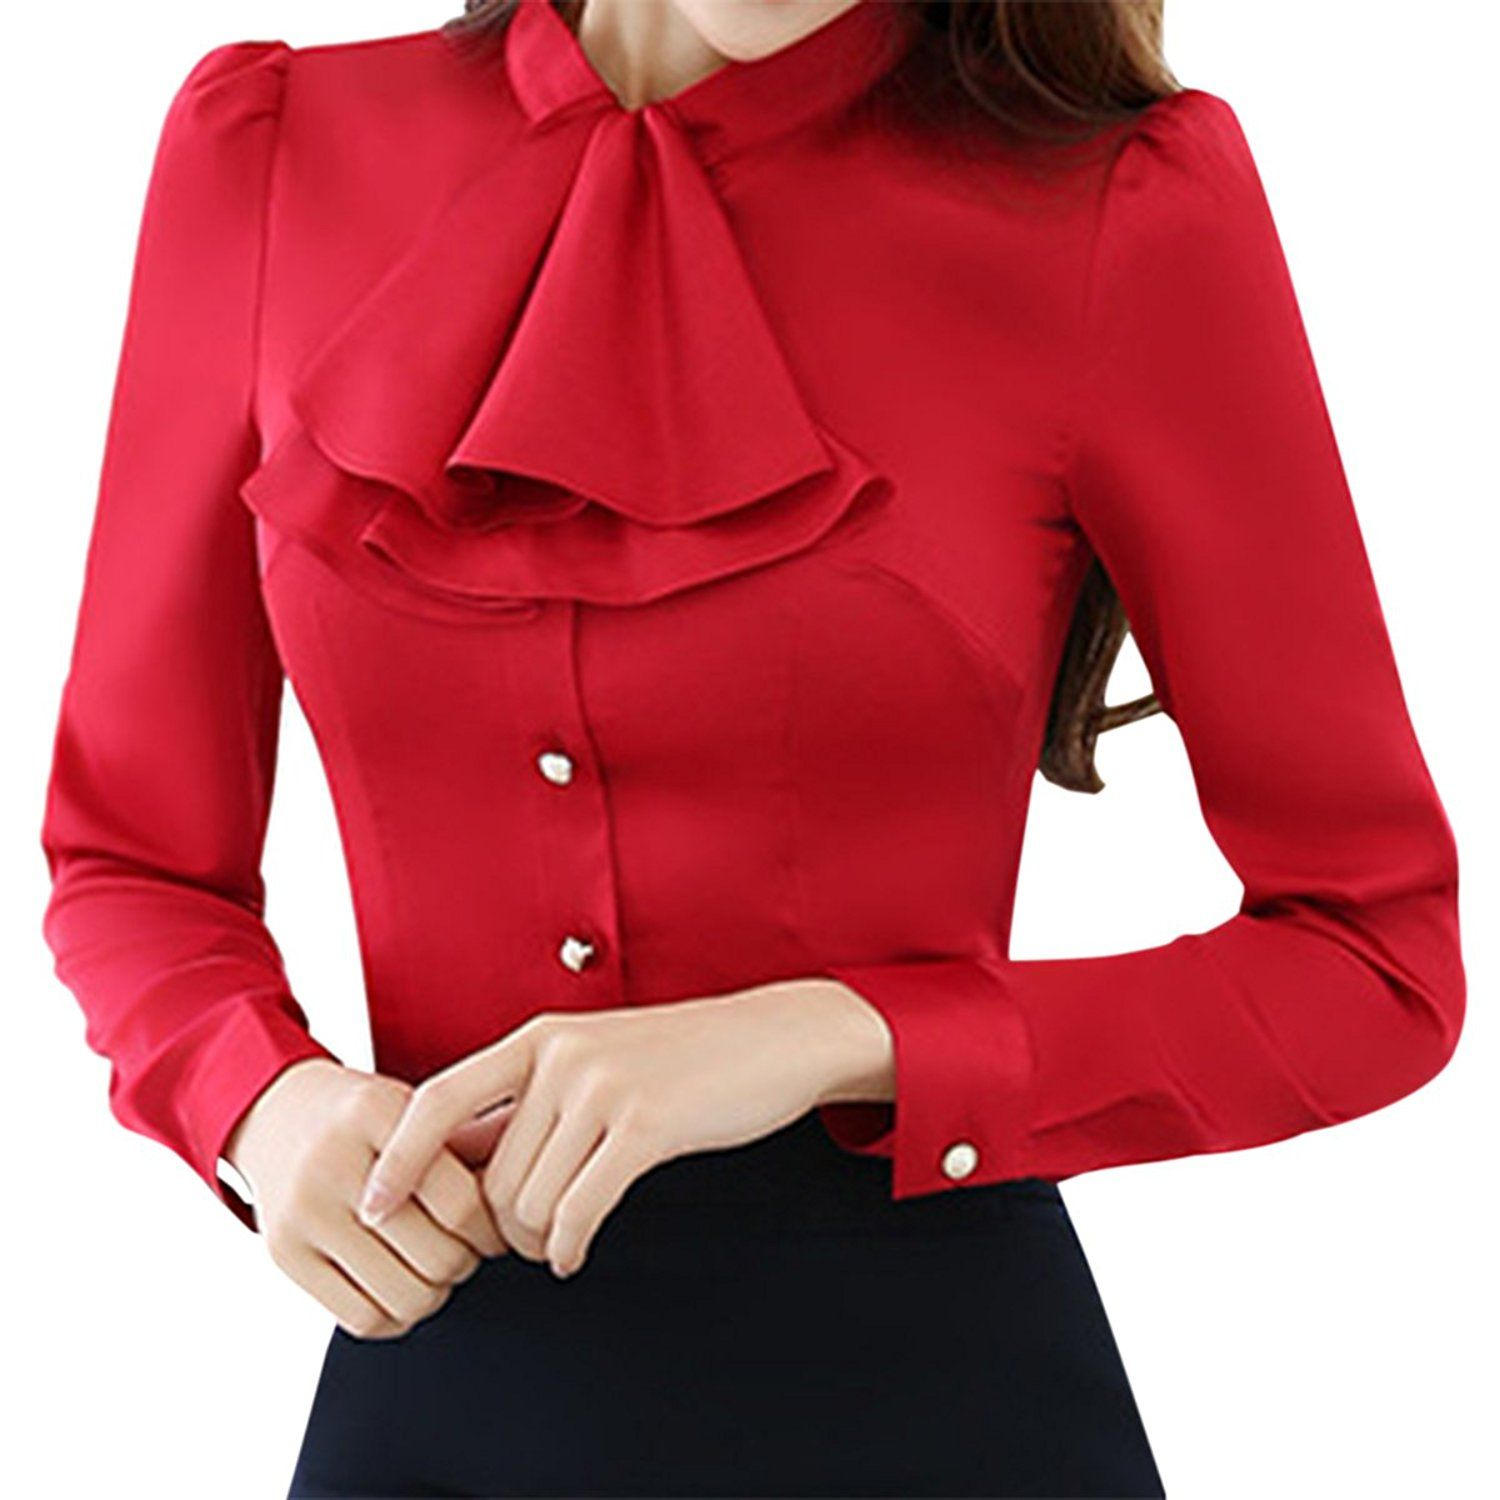 c29b60a96848f4 E.JAN1ST Women s Long Sleeve Shirt Tie Bow Neck Button End Slim Fit Chiffon  Blouse  RedIsMyColor